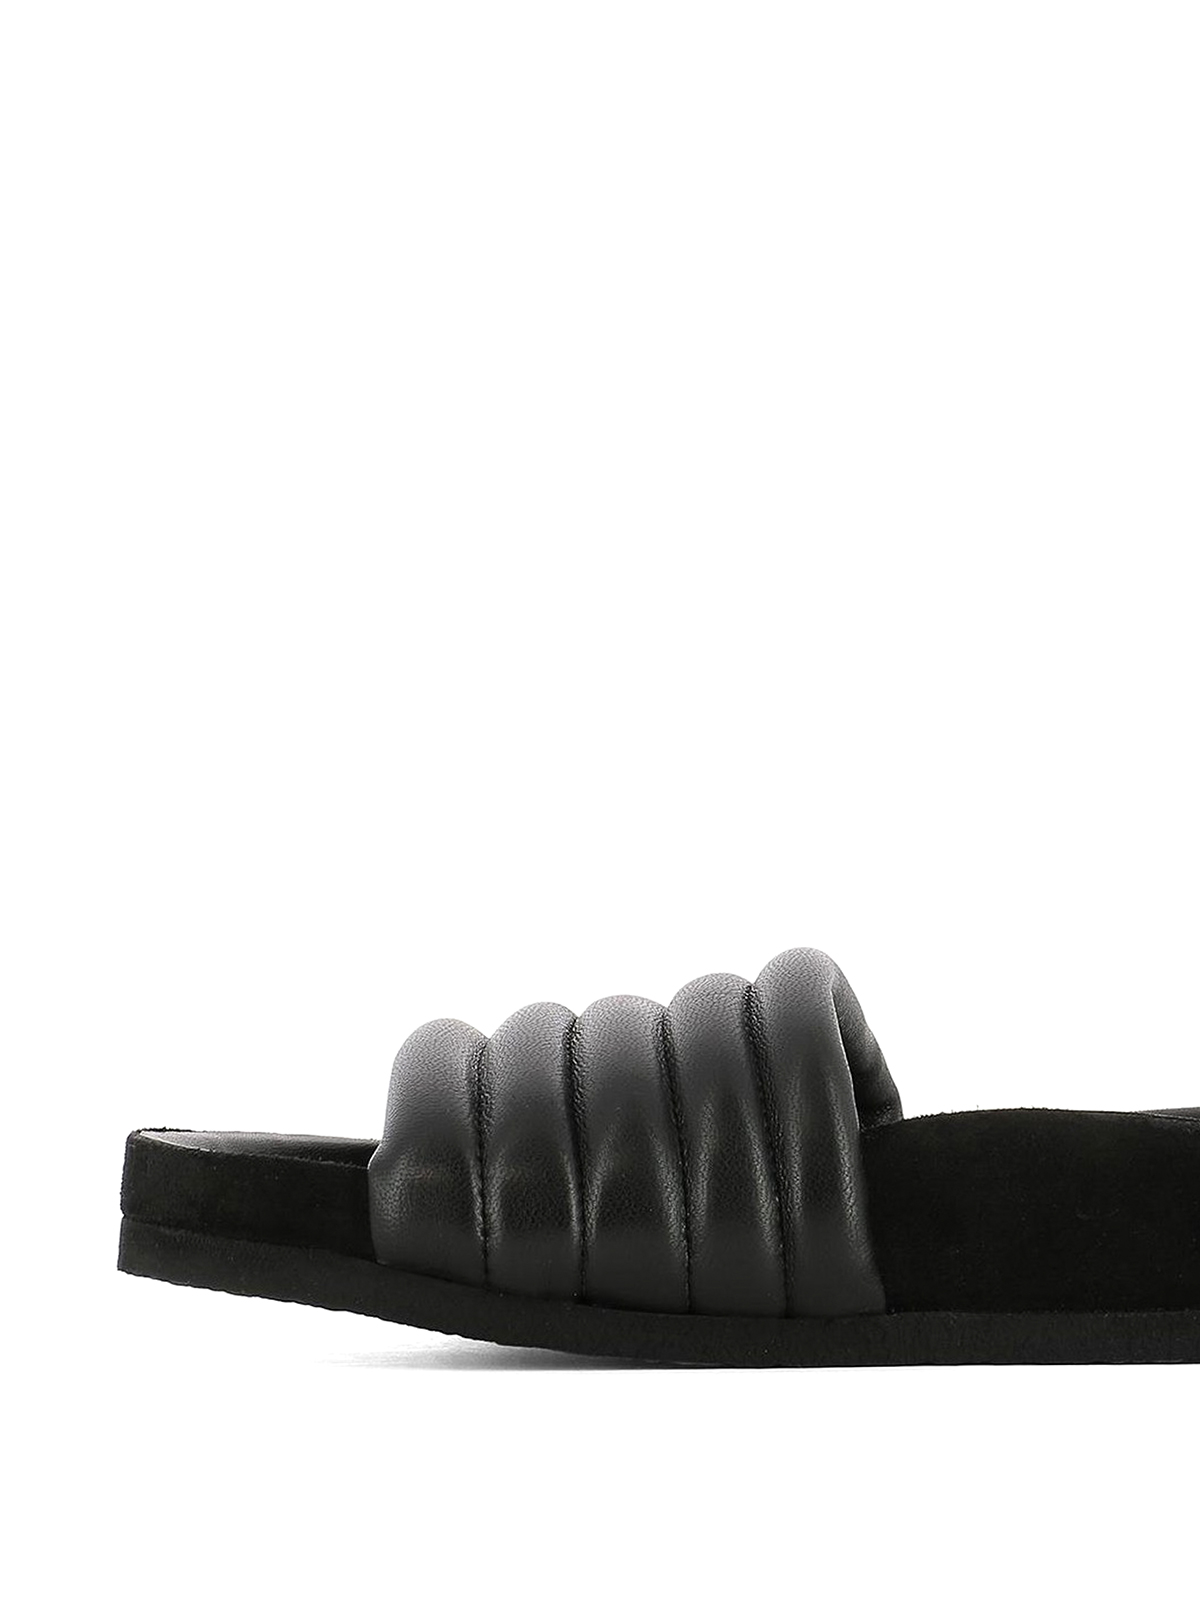 dbfaef2a21 iKRIX ISABEL MARANT: sandals - Hellea quilted leather slippers